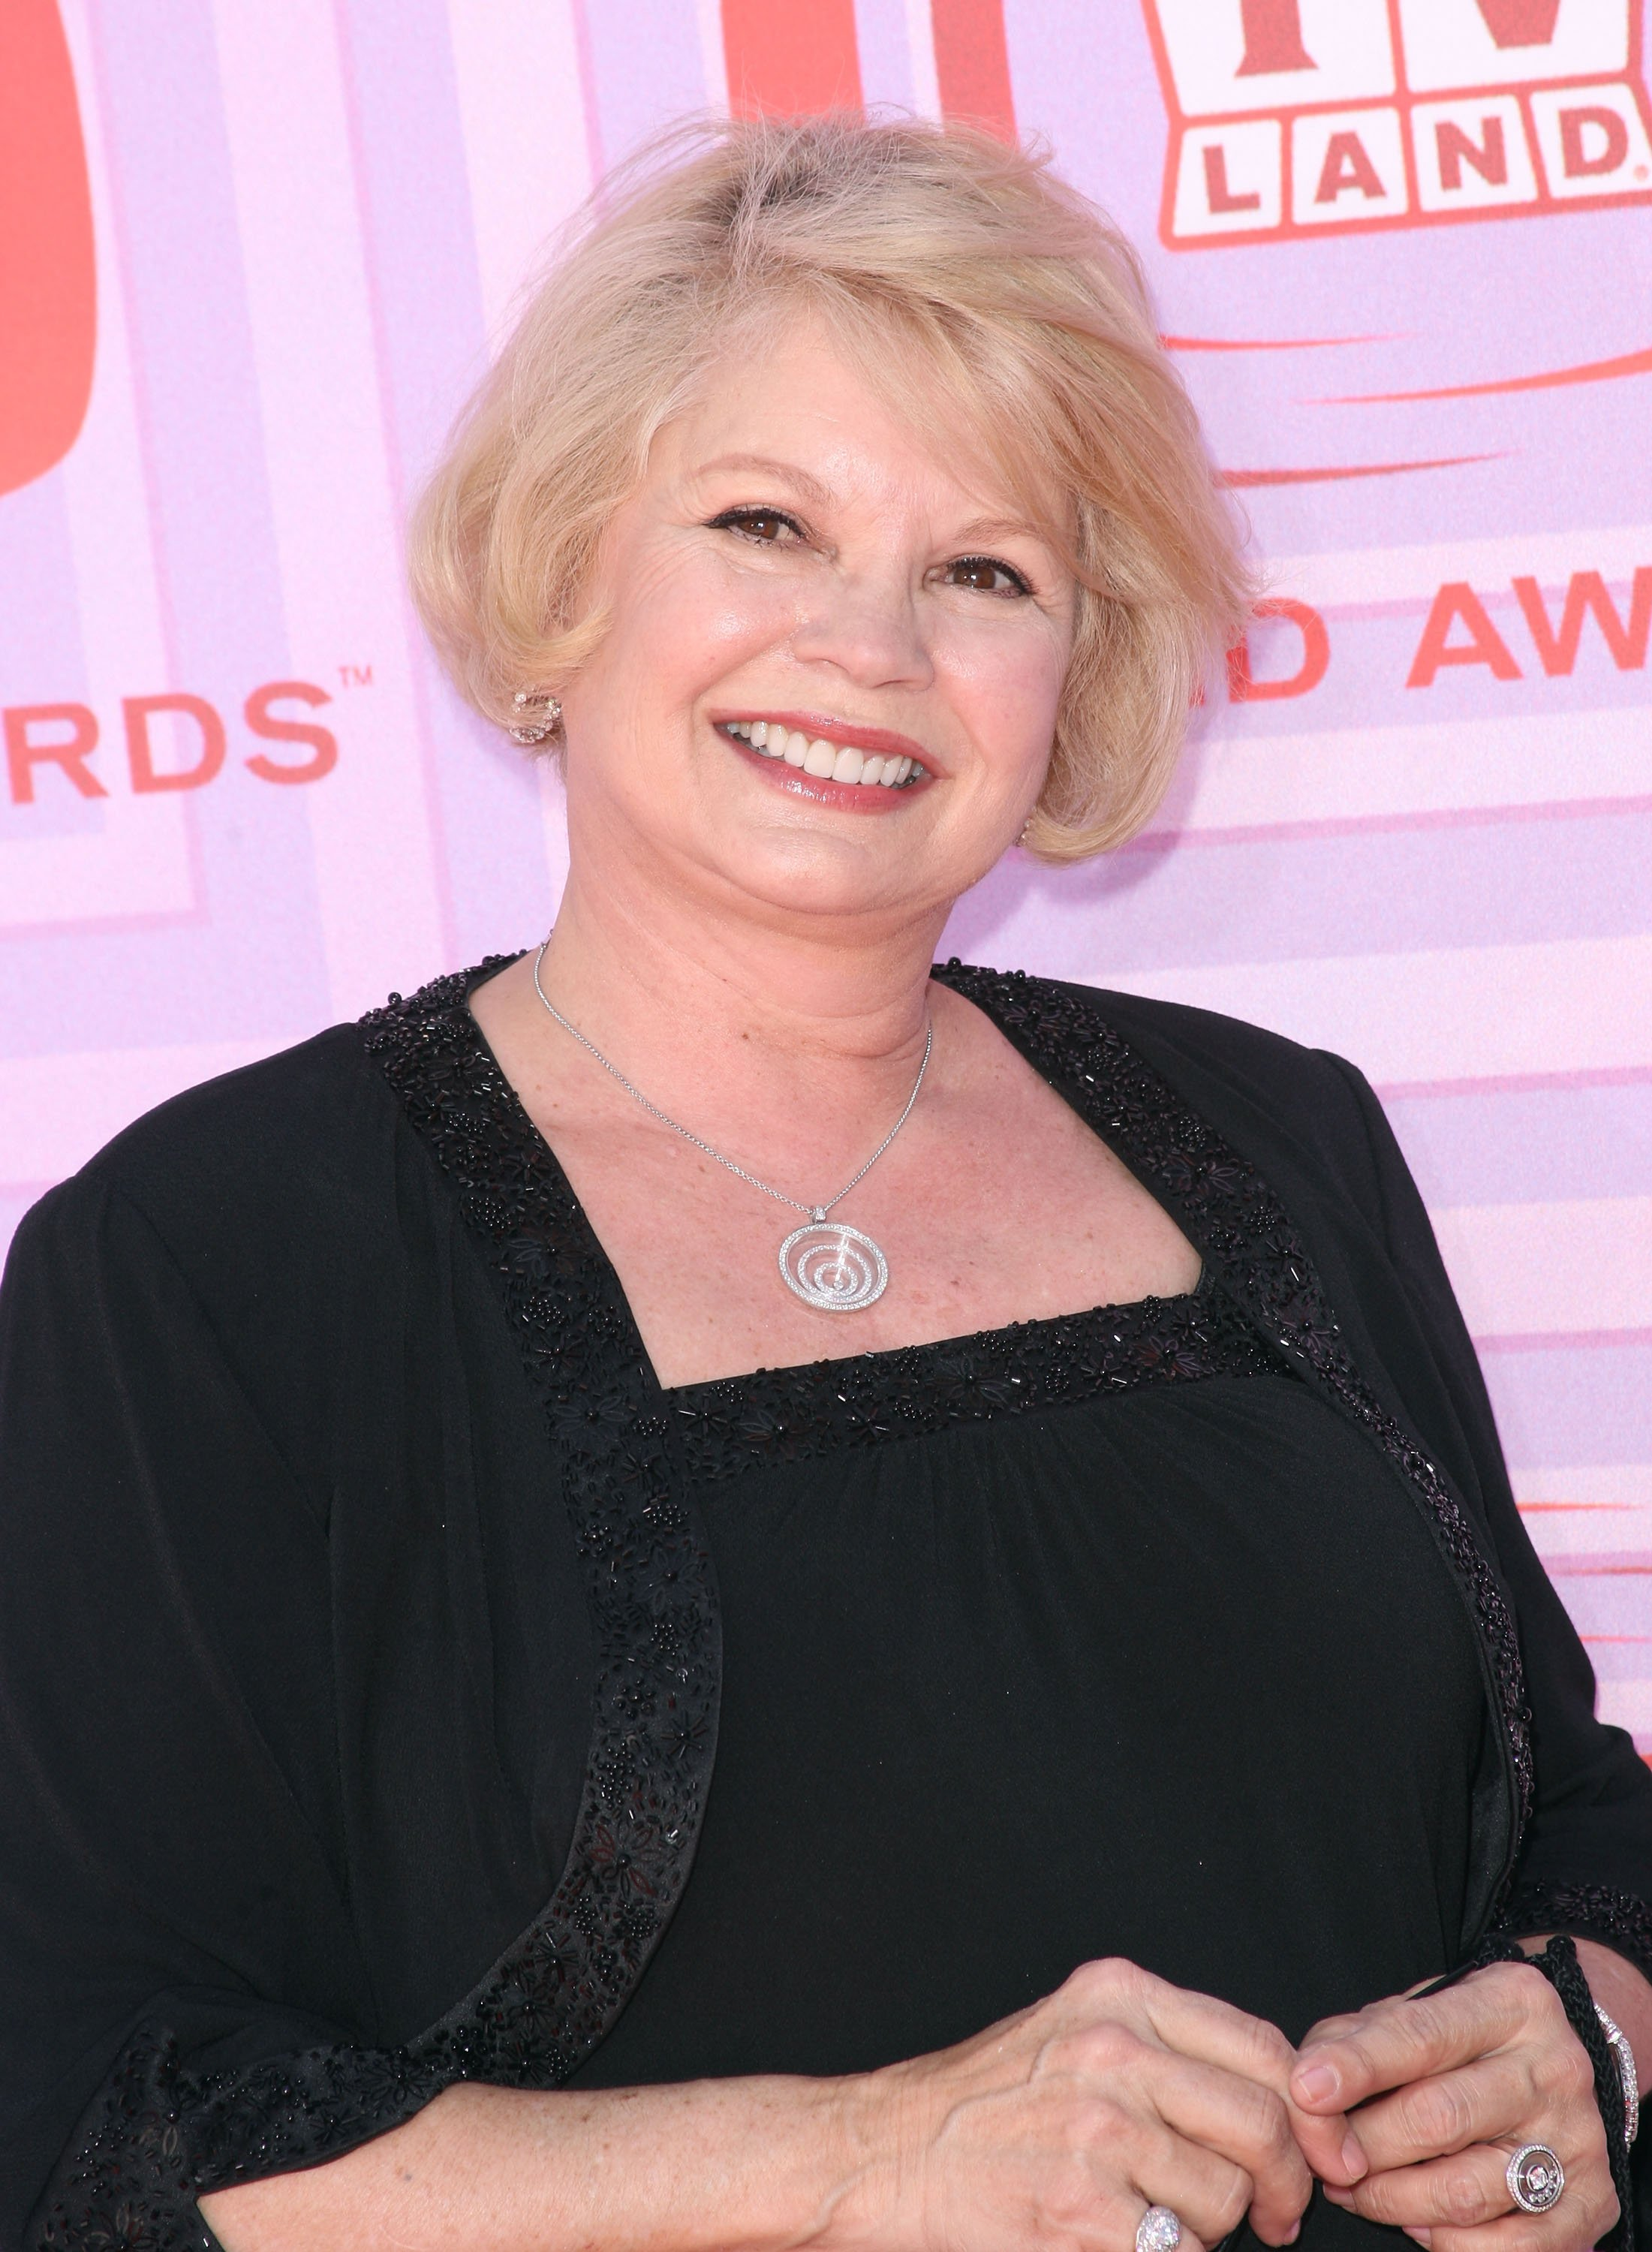 Kathy Garver at the 7th Annual TV Land Awards on April 19, 2009 | Photo: GettyImages